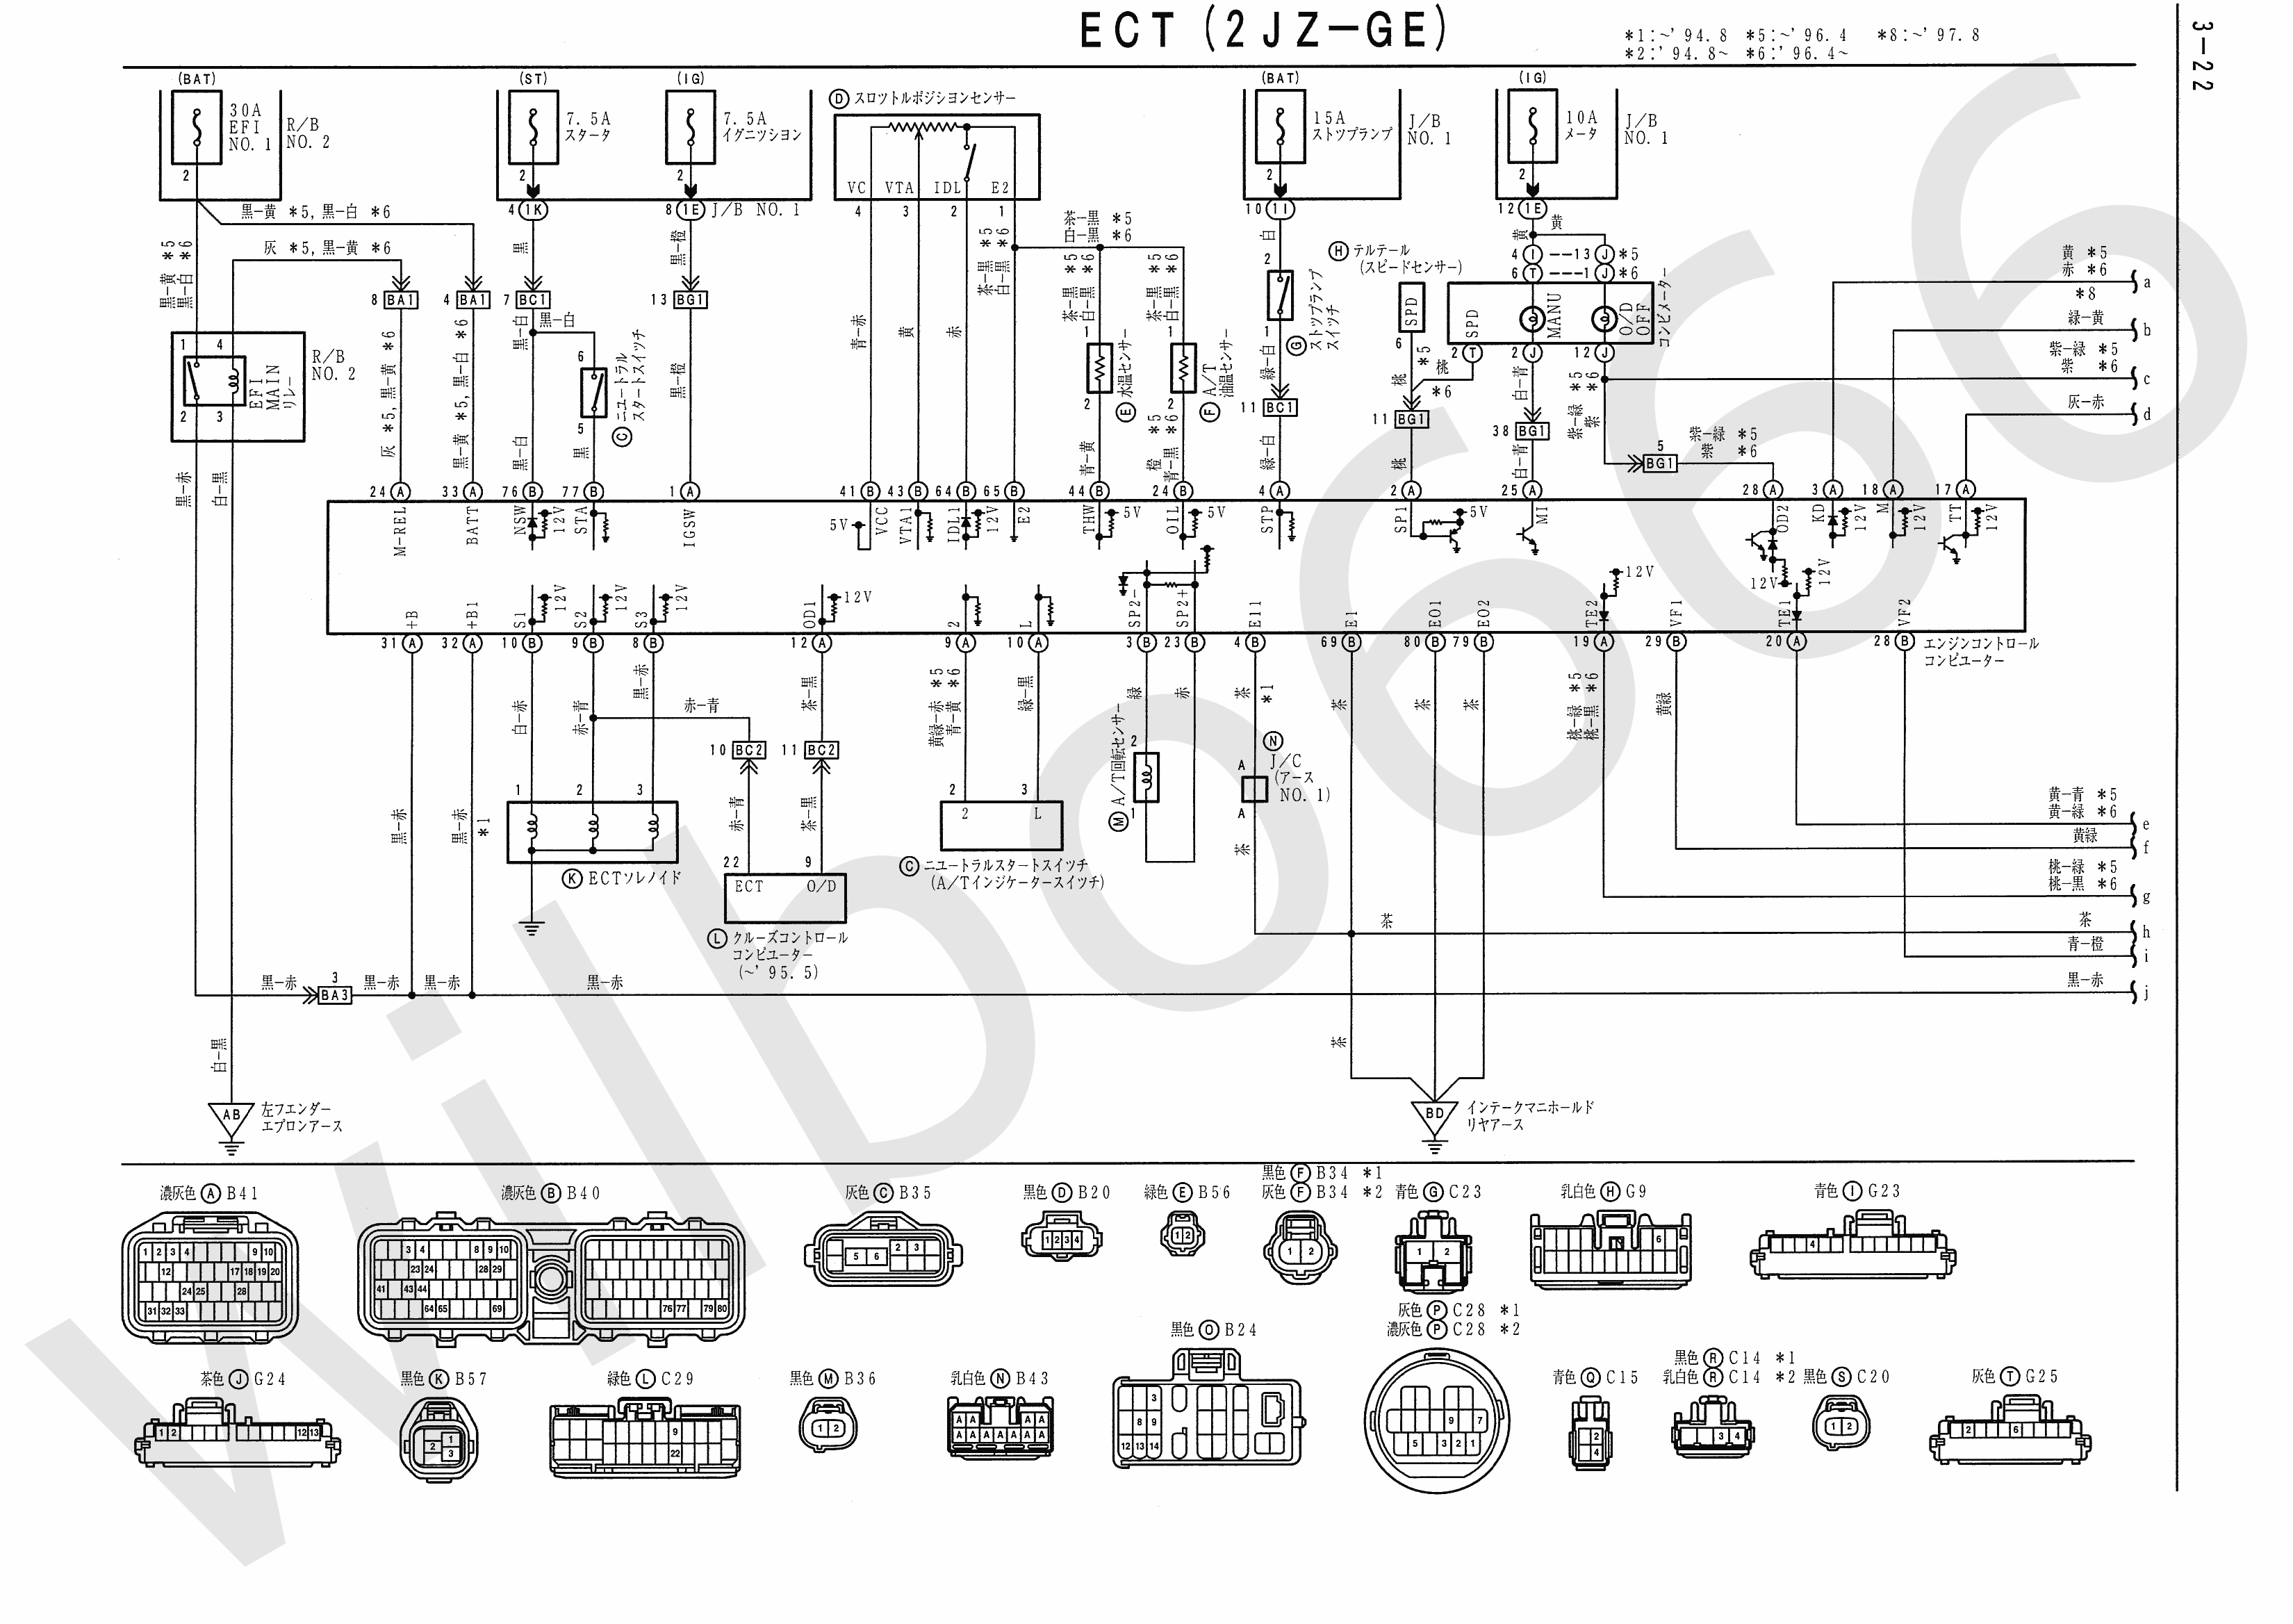 JZA80 Electrical Wiring Diagram 6742505 3 22?resize\=665%2C471 aritech cs 250 wiring diagram \u2022 indy500 co Honda Wiring Diagram at bayanpartner.co